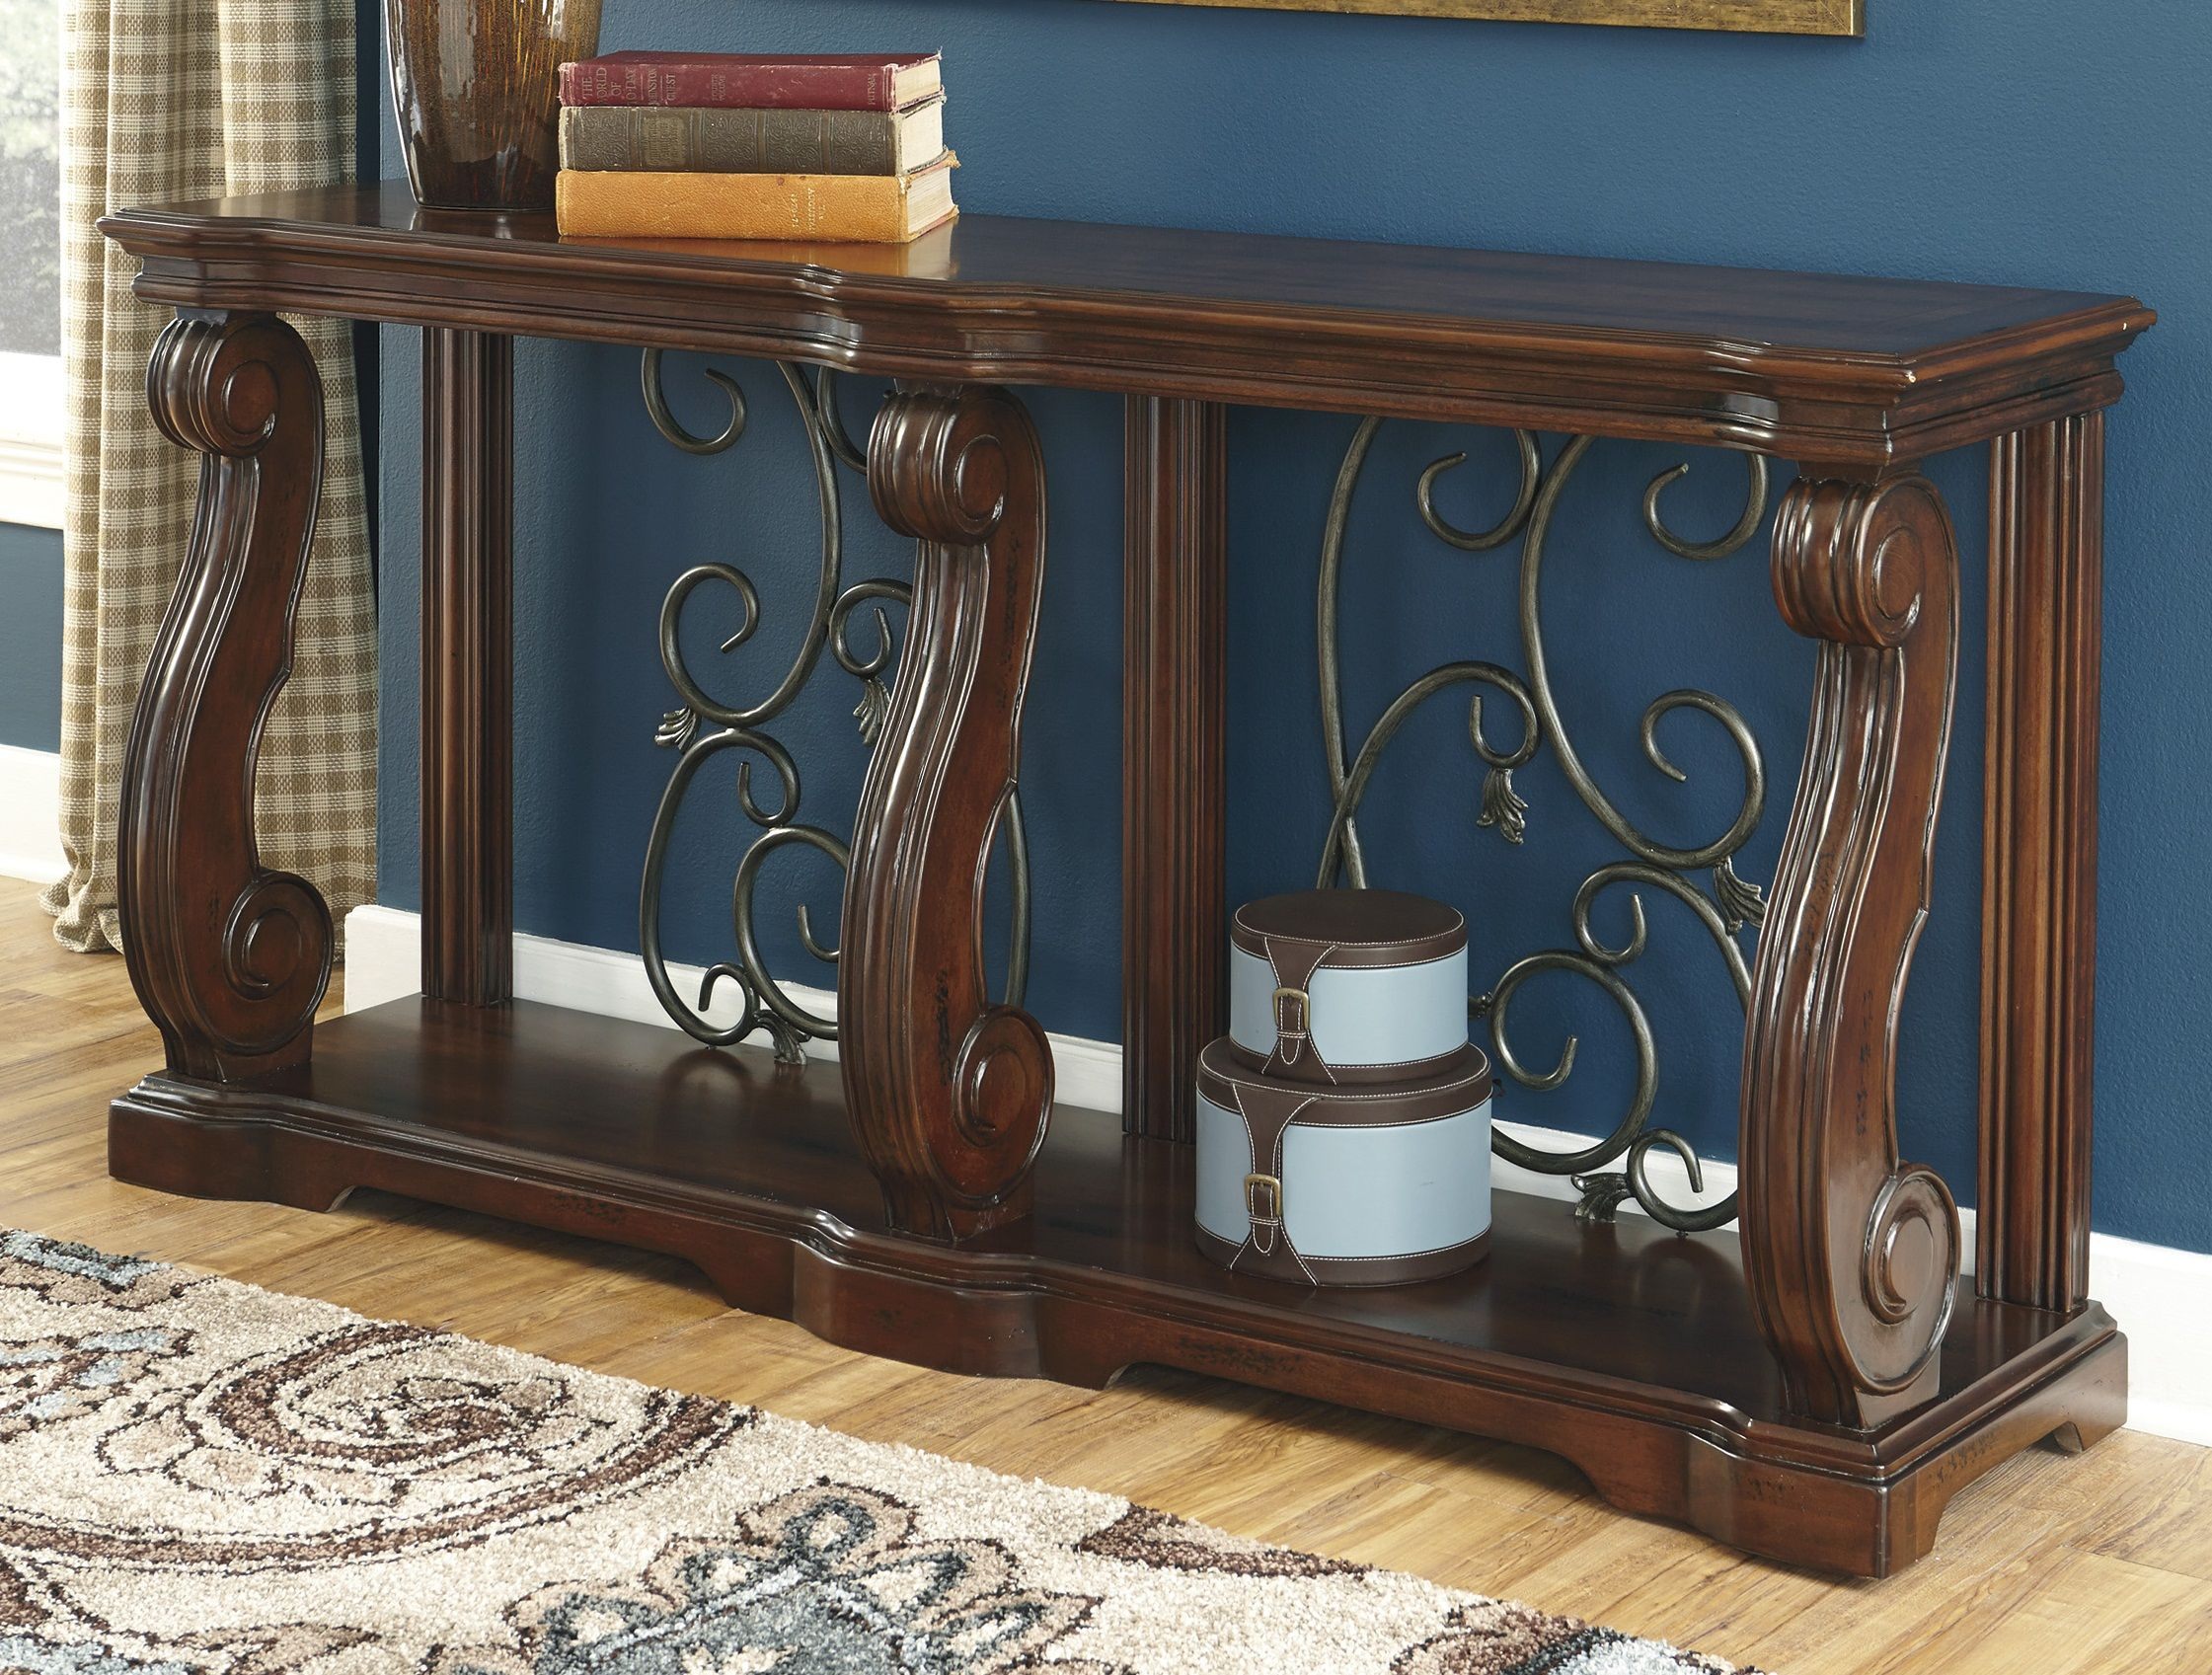 Gaston Sofa Table By Ashley At Crowley Furniture In Kansas City